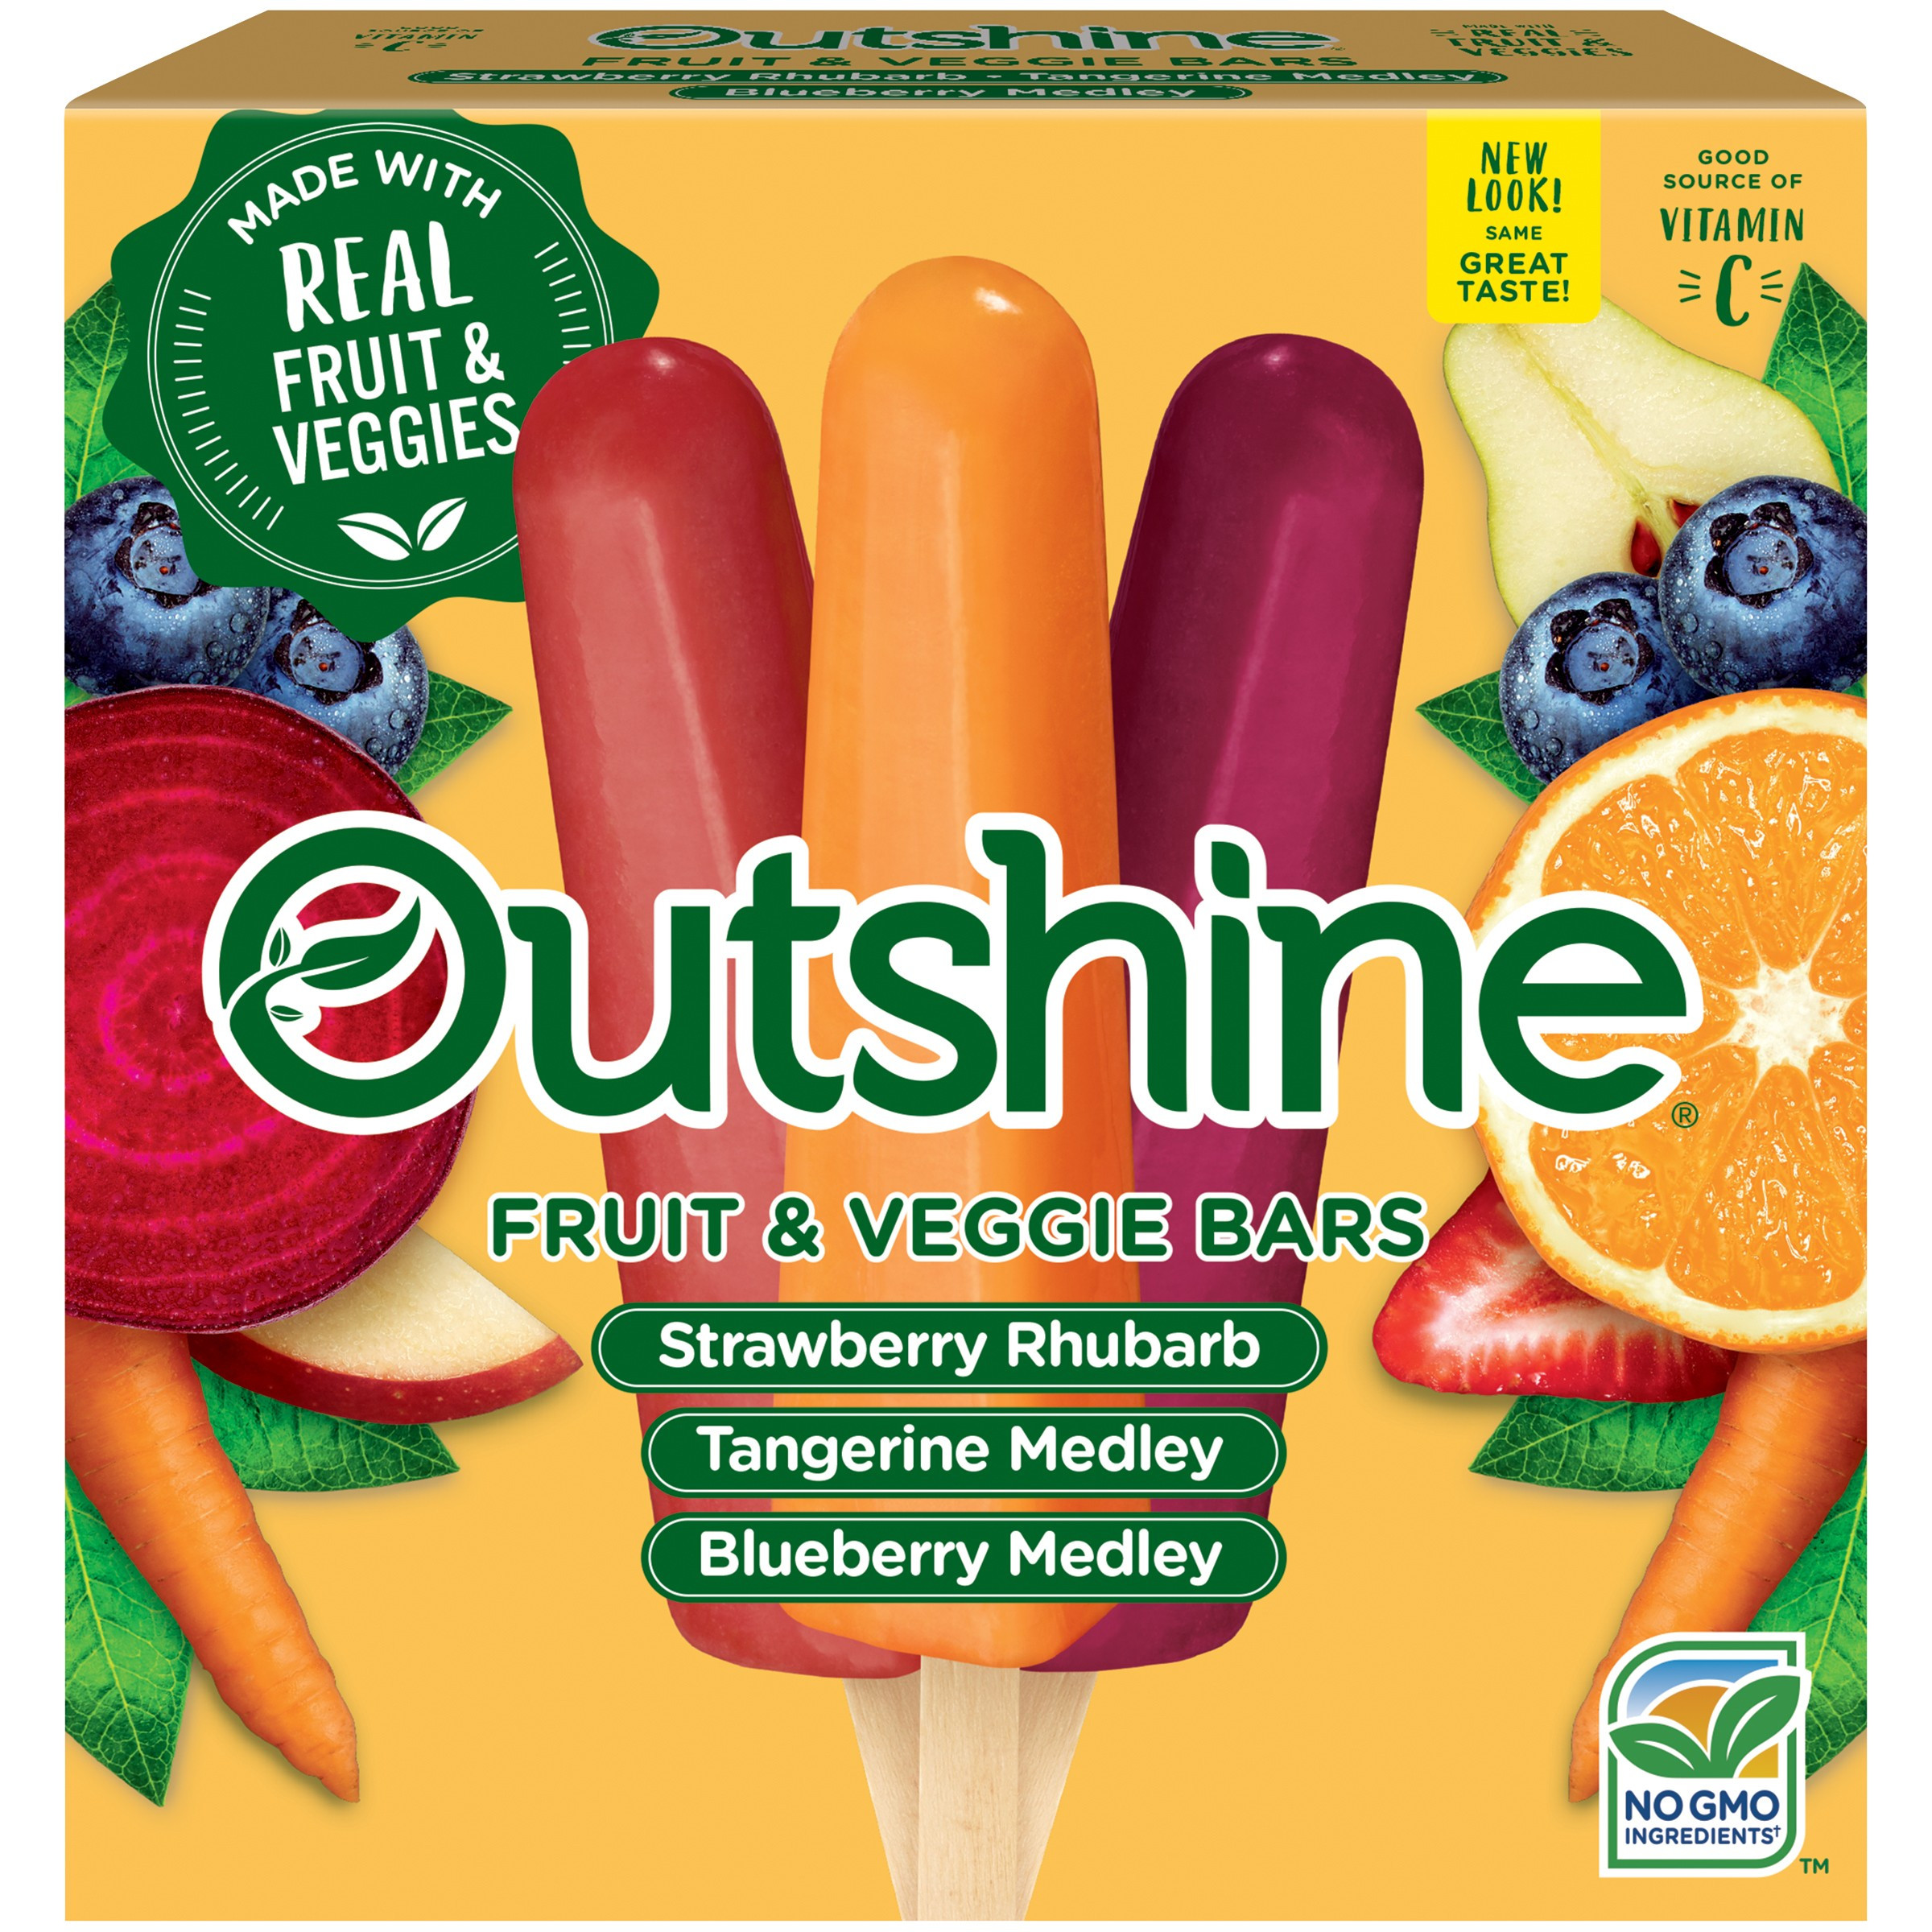 OUTSHINE Strawberry Rhubarb Tangerine Medley & Blueberry Medley Fruit & Veggie Bars Variety Pack 12 ct Box Walmart